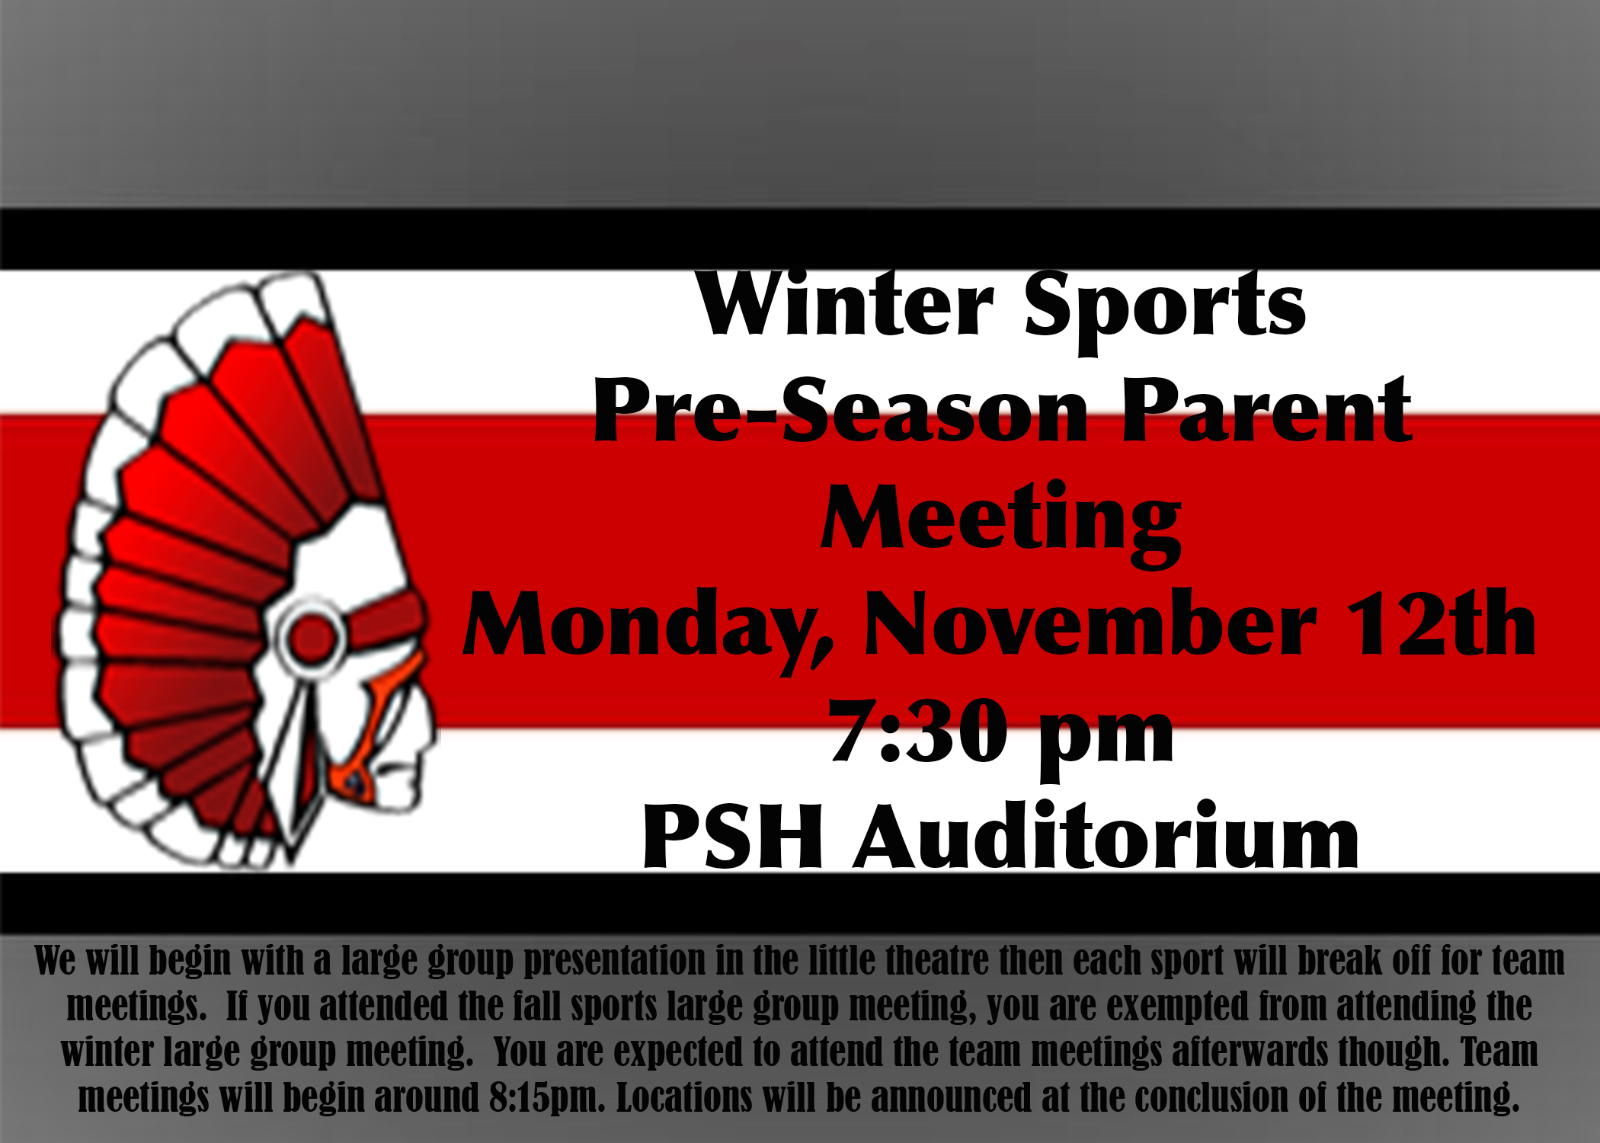 OHSAA Winter Sports Pre-Season Parent Meeting is on 11/12 at 7:30pm in Auditorium